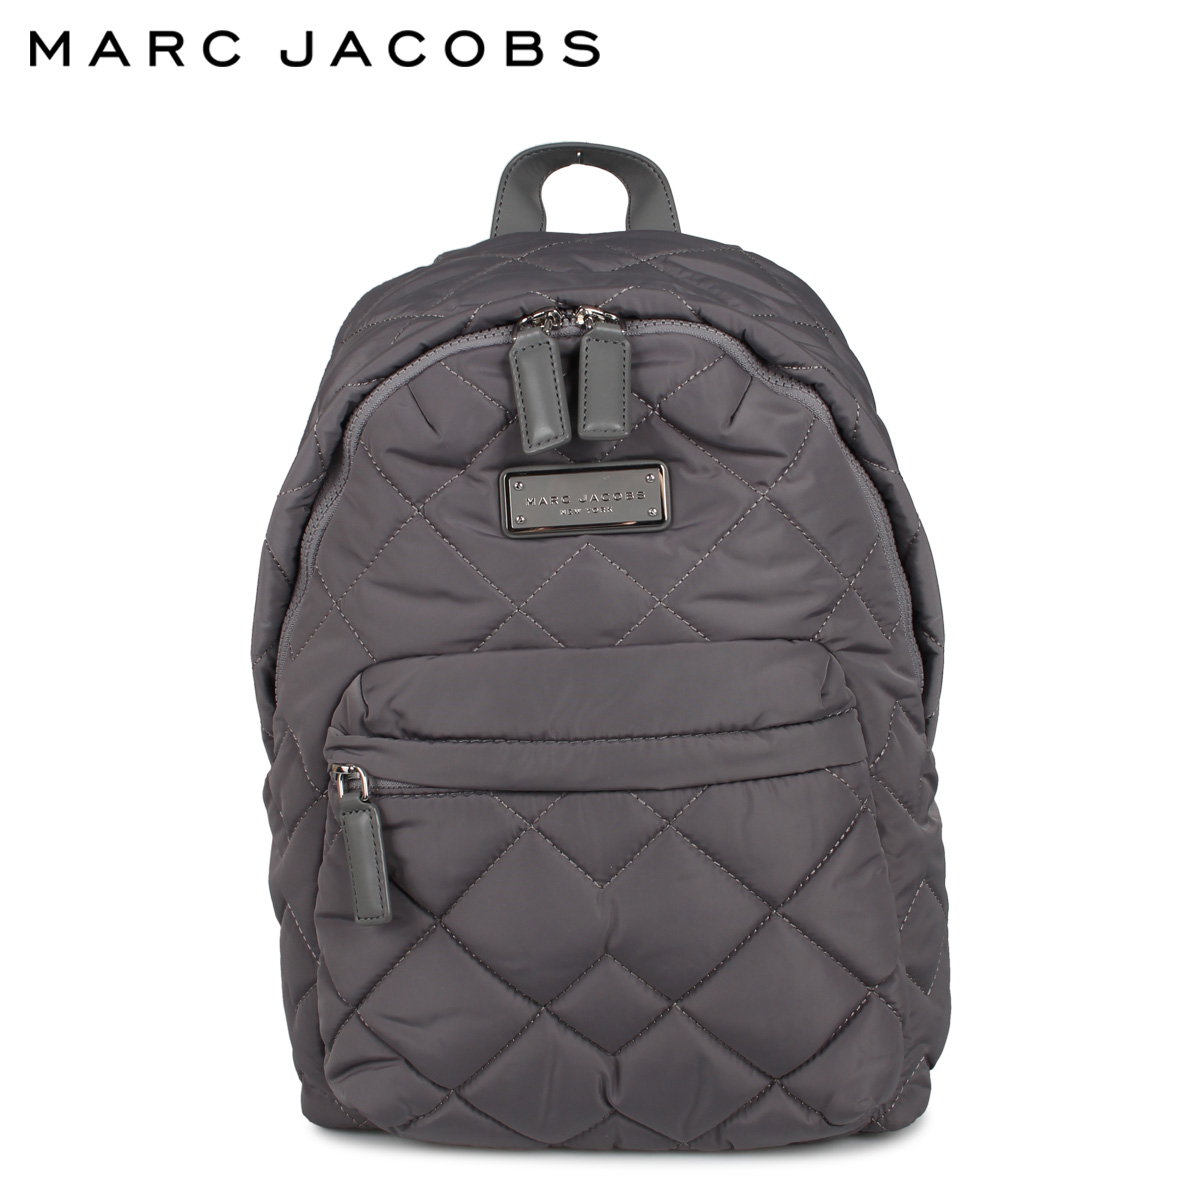 MARC JACOBS マークジェイコブス リュック バッグ バックパック レディース QUILTED BACKPACK グレー M0011321-097 [4/27 新入荷]